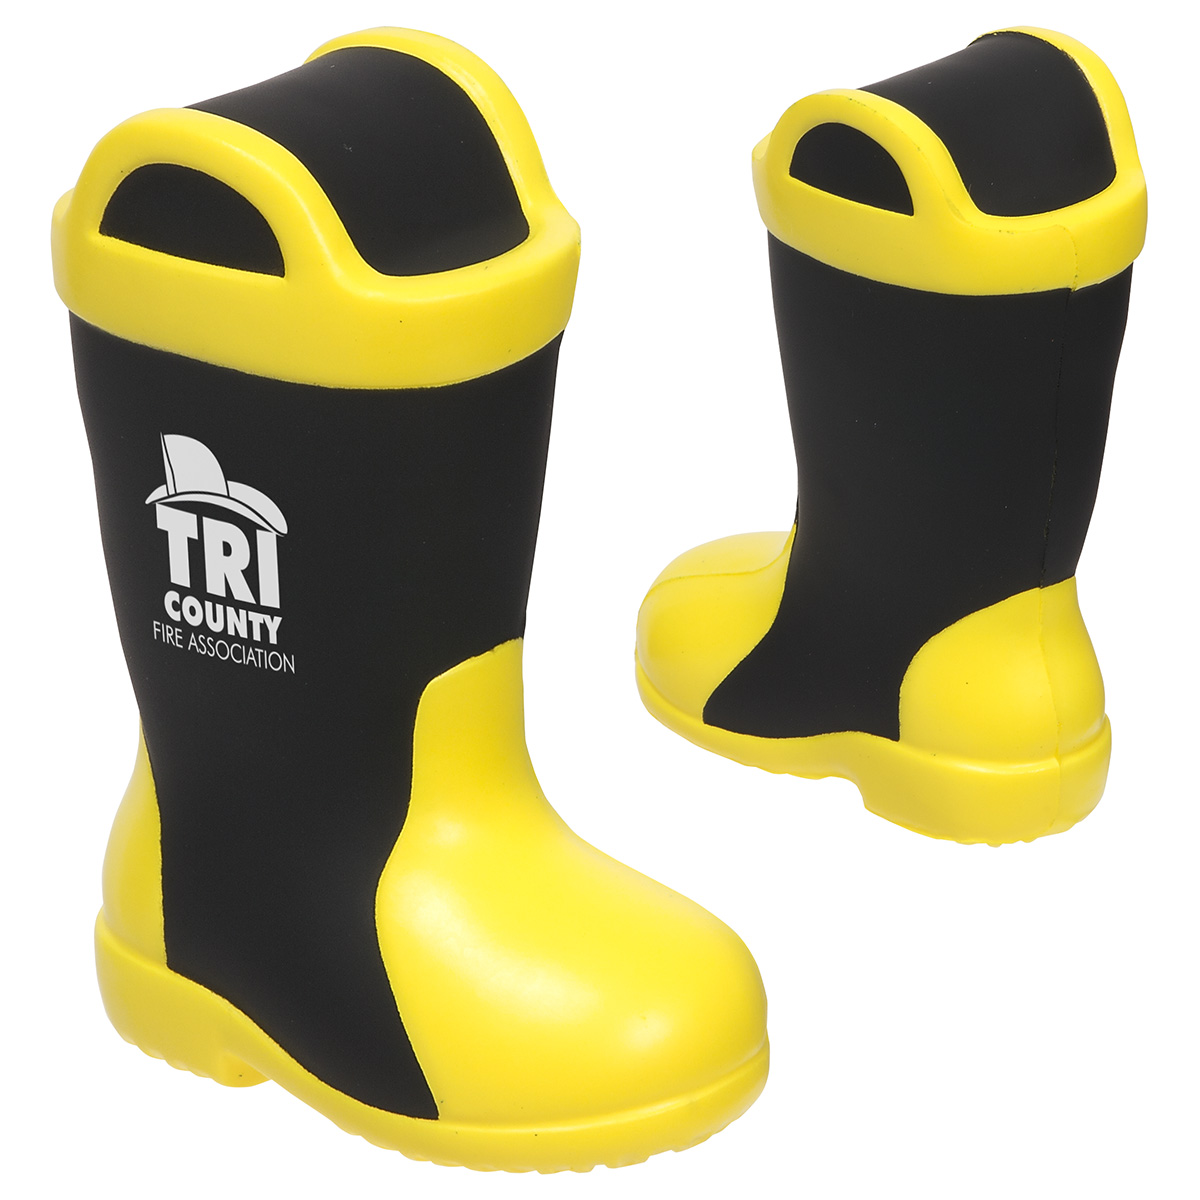 Firefighter Boot Stress Reliever, LCC-FB18, 1 Colour Imprint